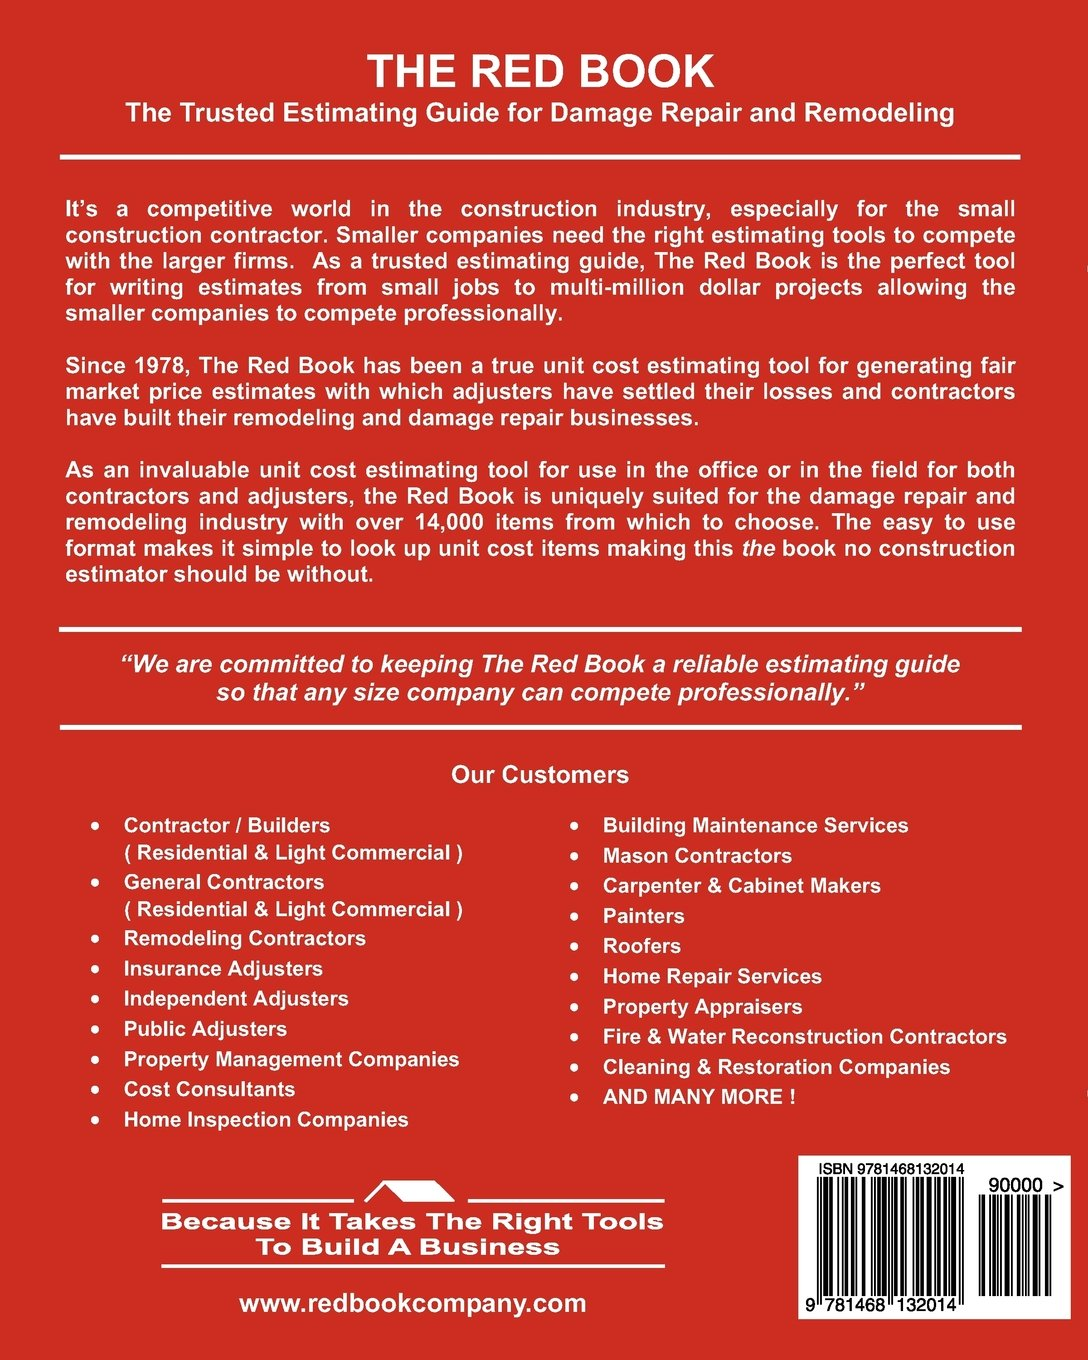 the red book unit cost estimator for construction insurance damage